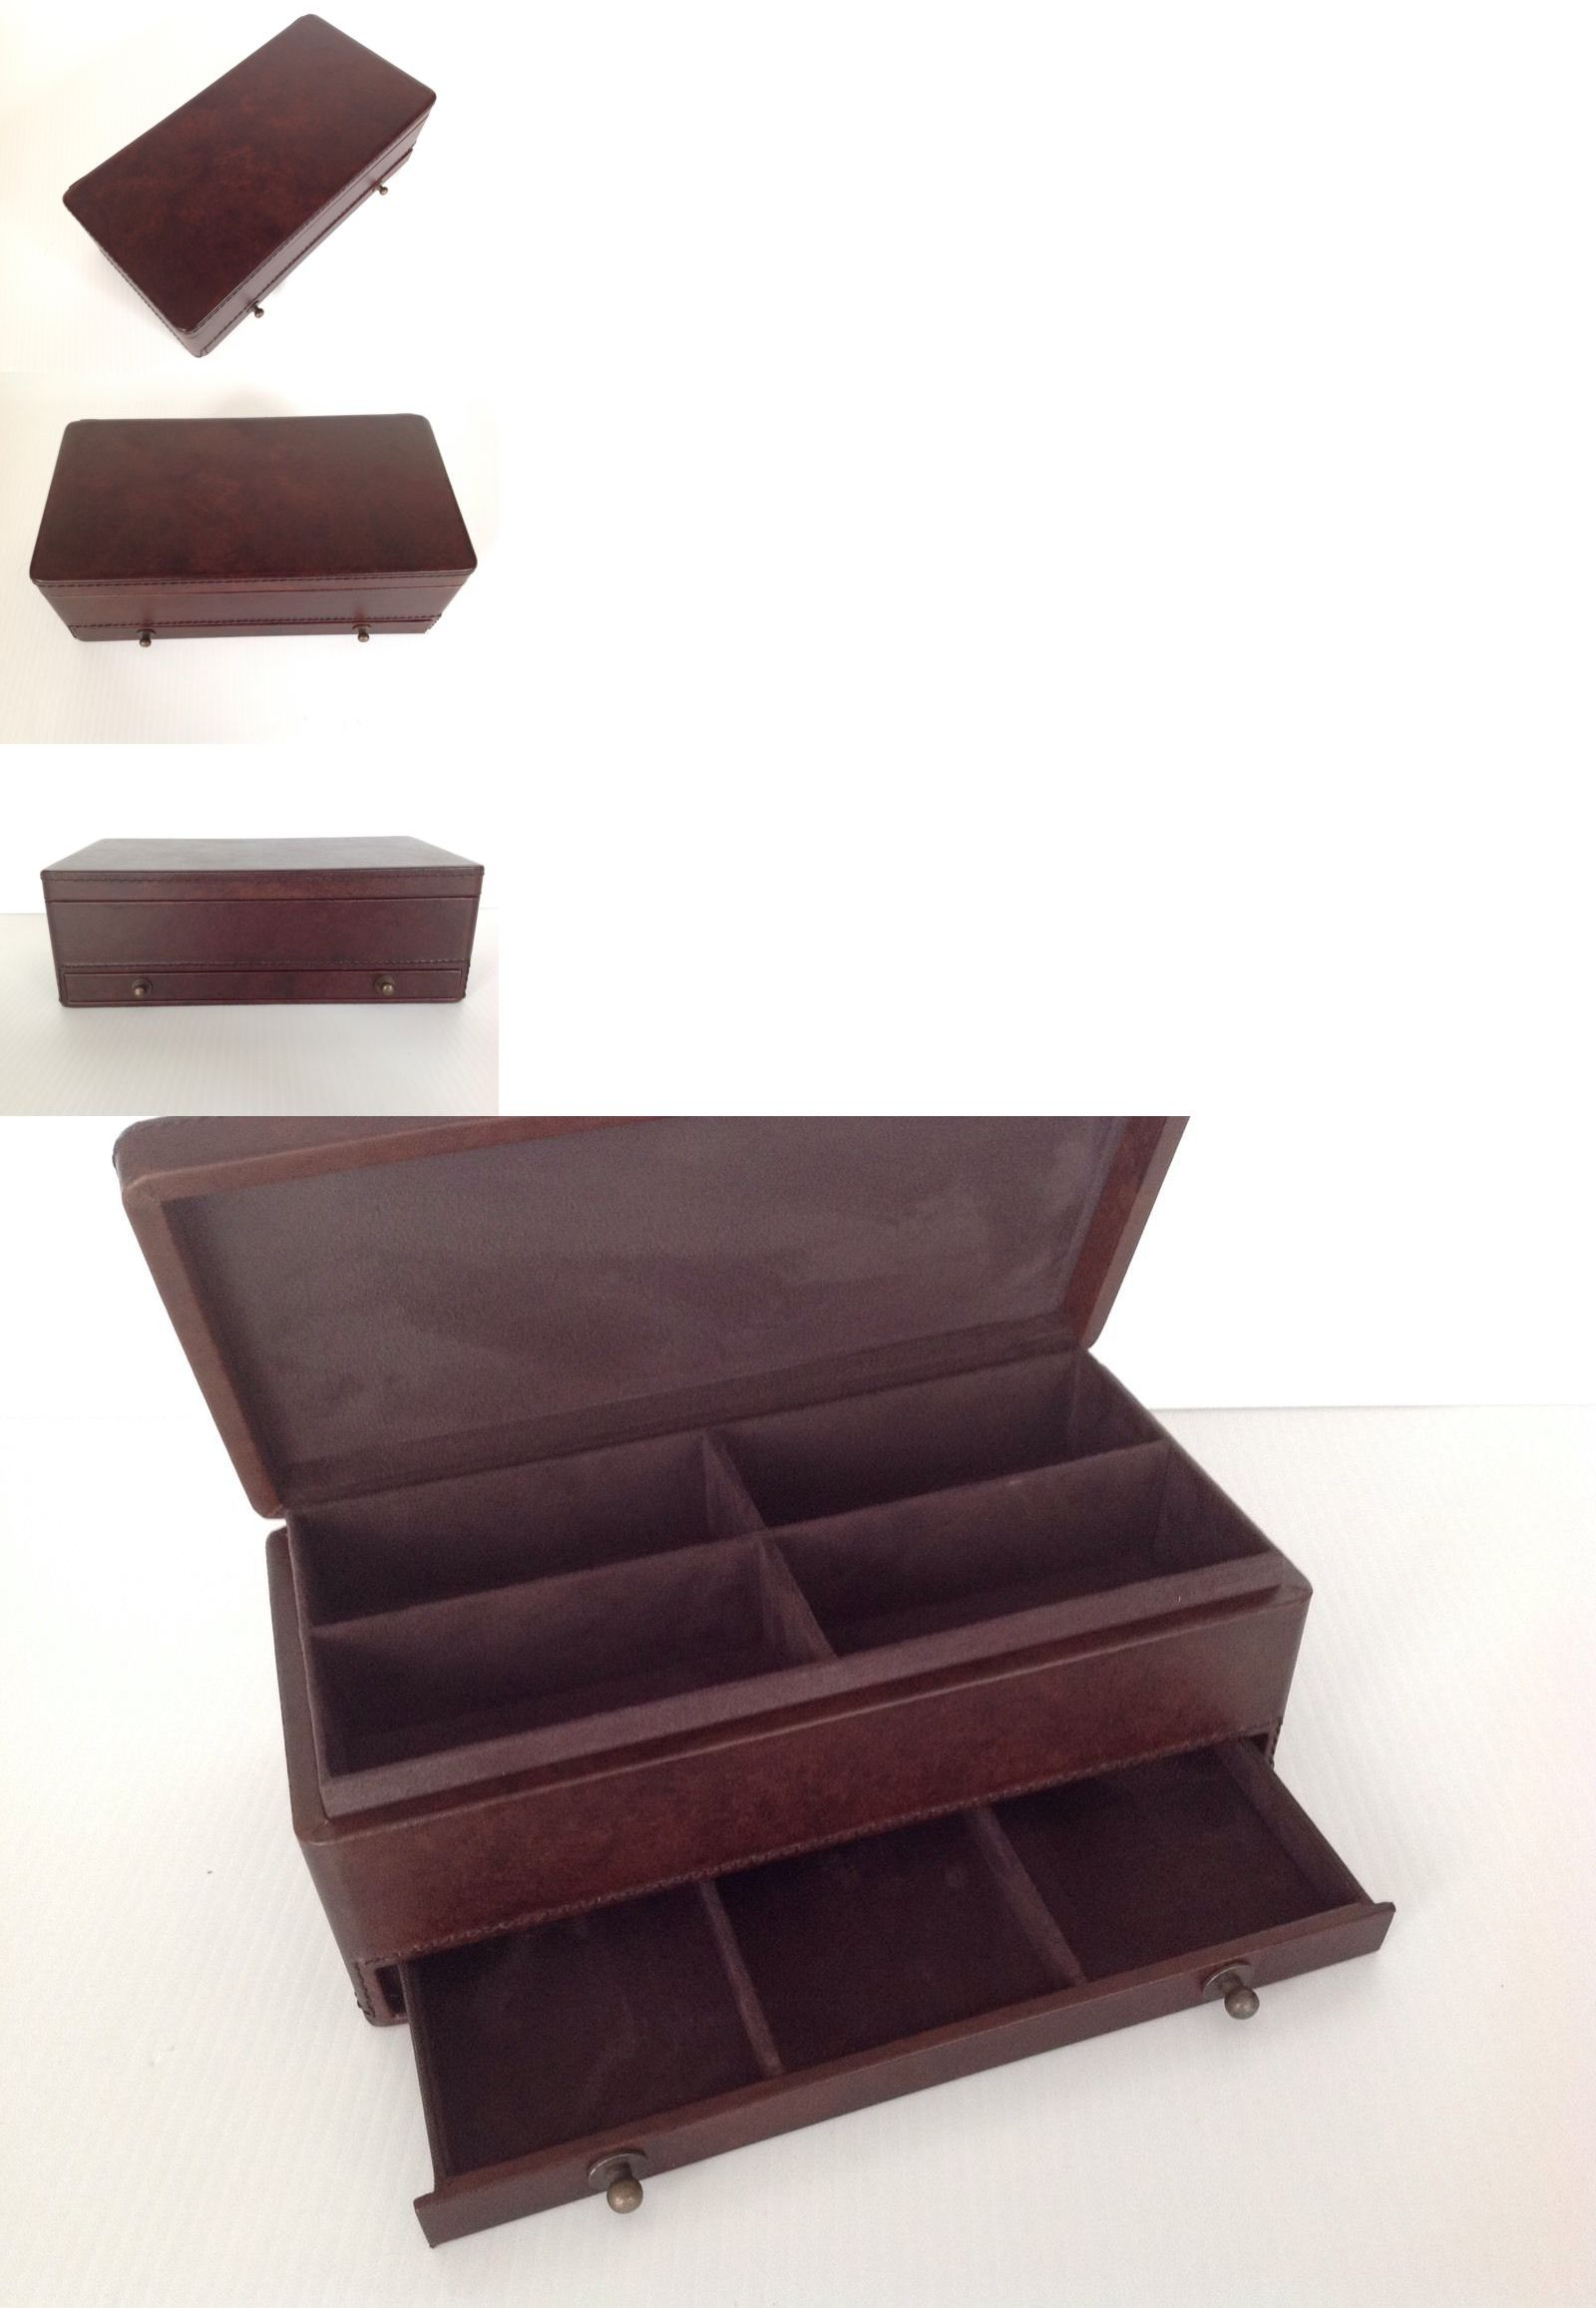 Jewelry Boxes 3820 Pottery Barn Saddle Leather Valet Chocolate